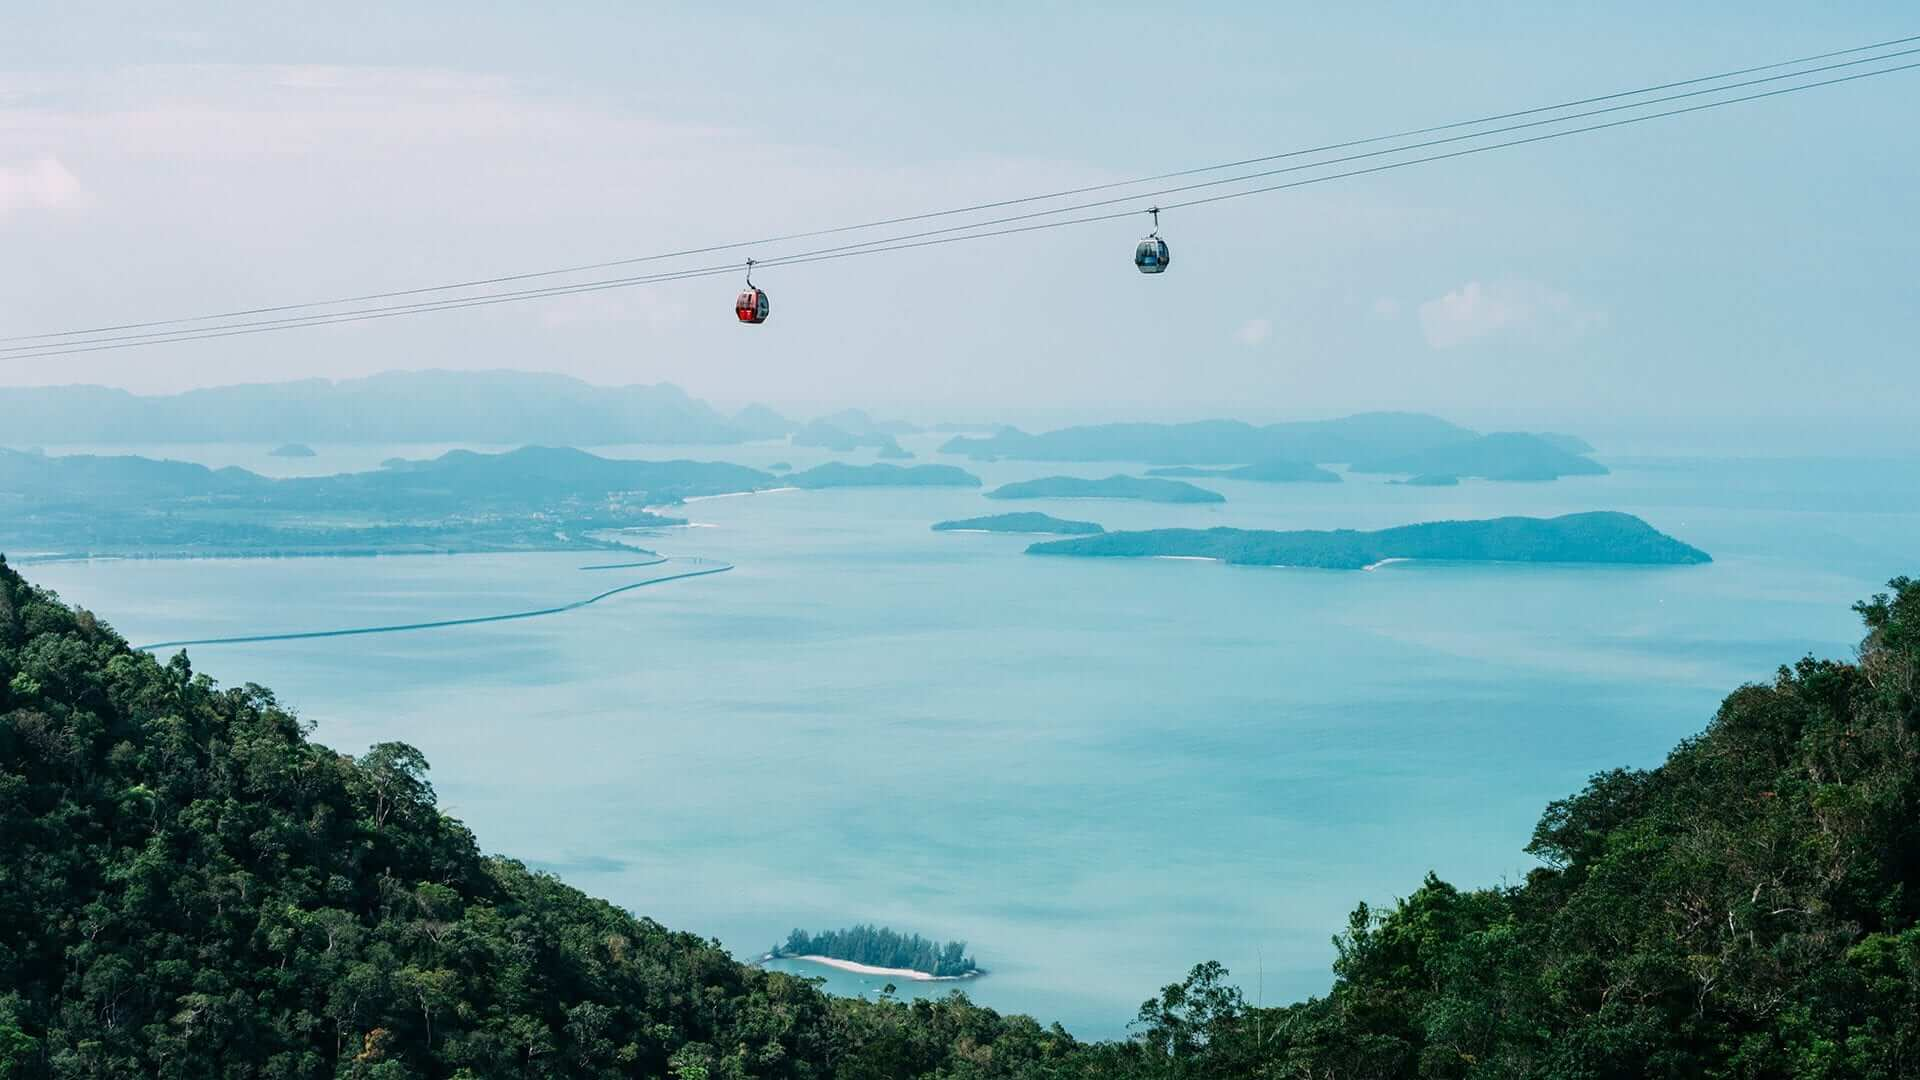 view of ocean and islands from high up. two cable cars going across the sky